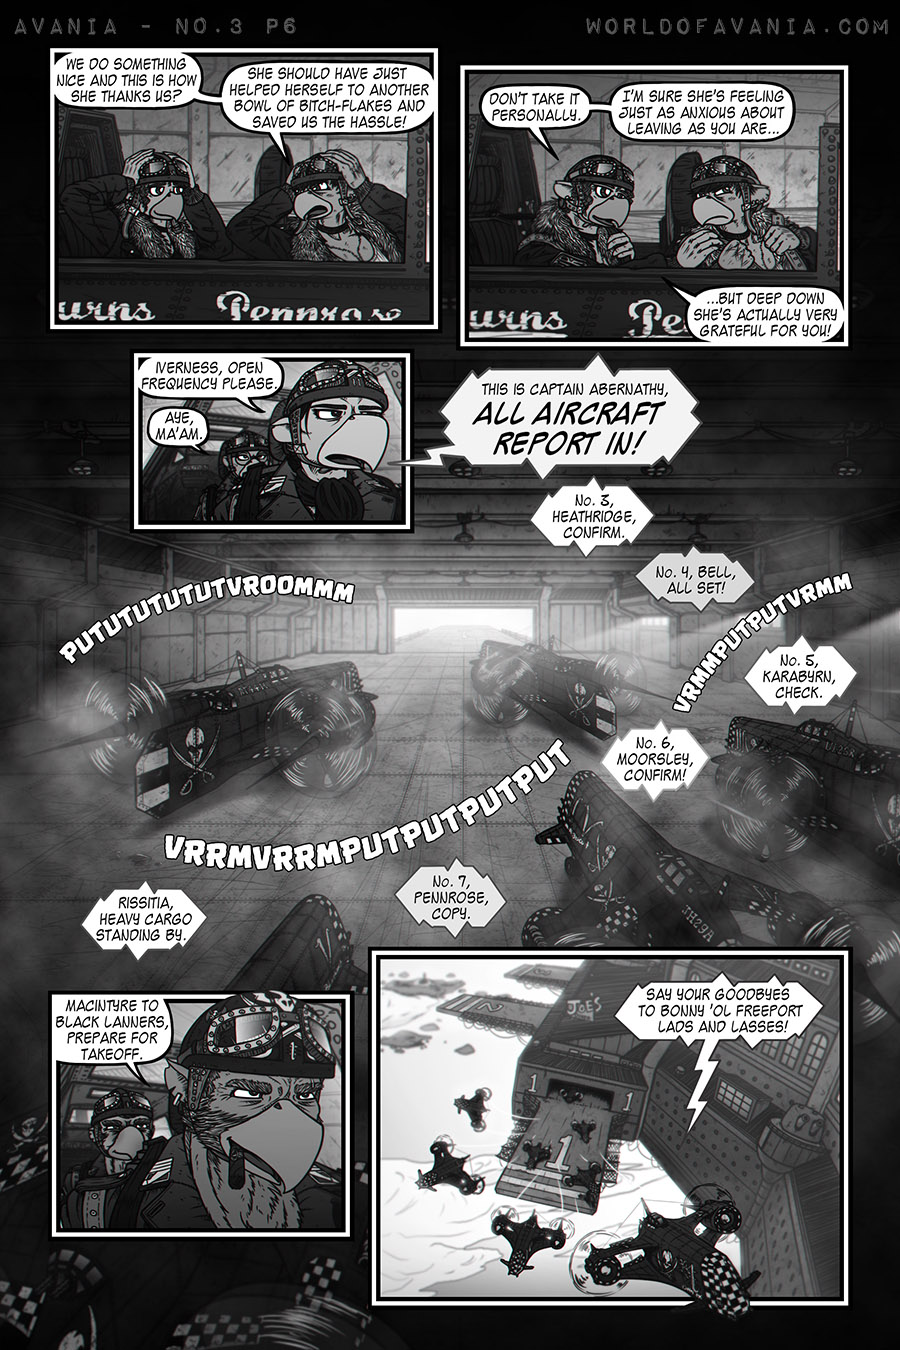 Avania Comic - Issue No.3, Page 6